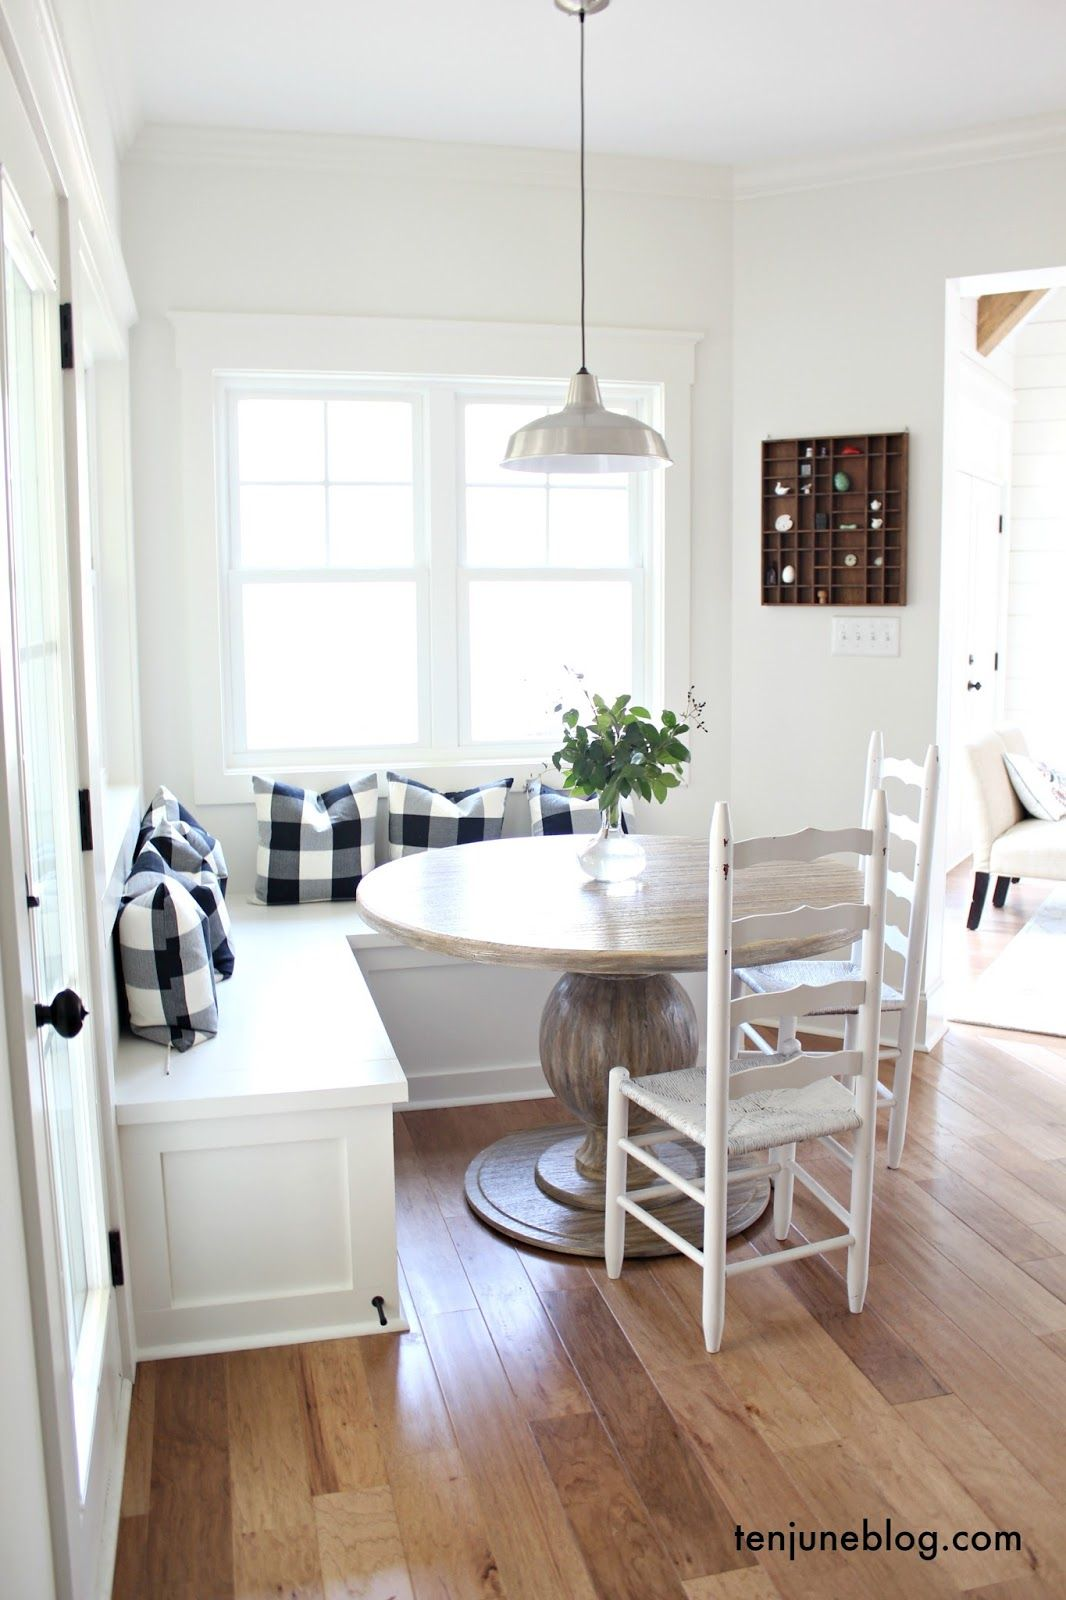 Ten June A Farmhouse Buffalo Check Built In Breakfast Nook White Painted Built In Benches Windows Light Hardwo Dining Nook Breakfast Nook Table Nook Table